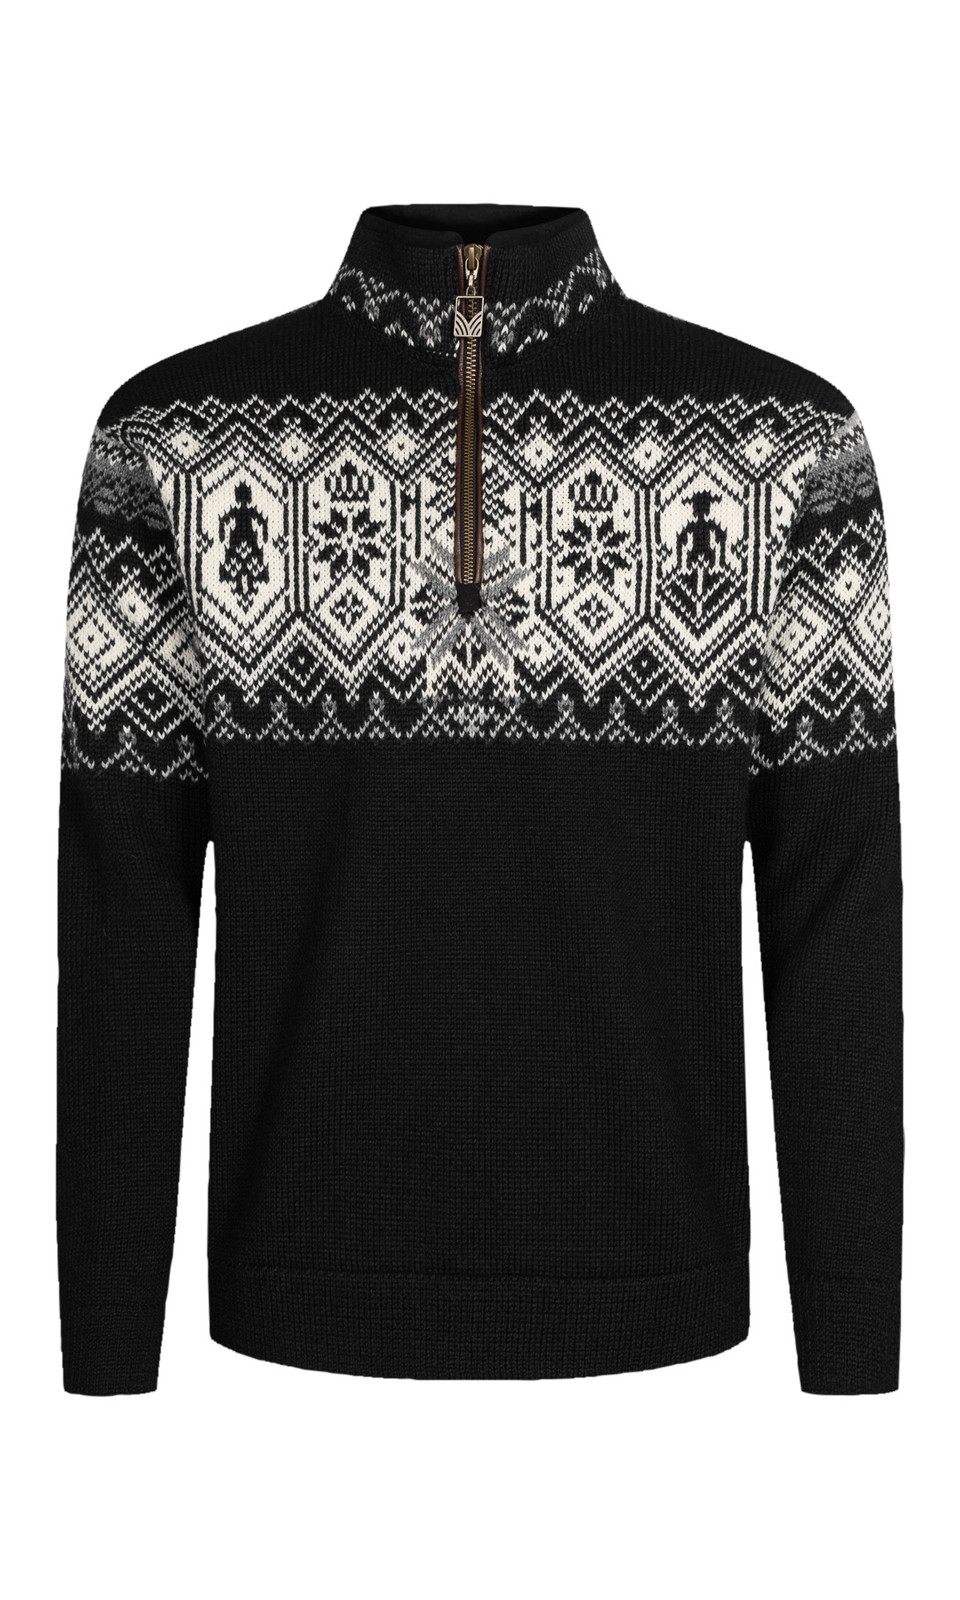 Dale of Norway Norge Sweater, Mens - Black/Charcoal Multi/Off White, 93731-F (93731-F)